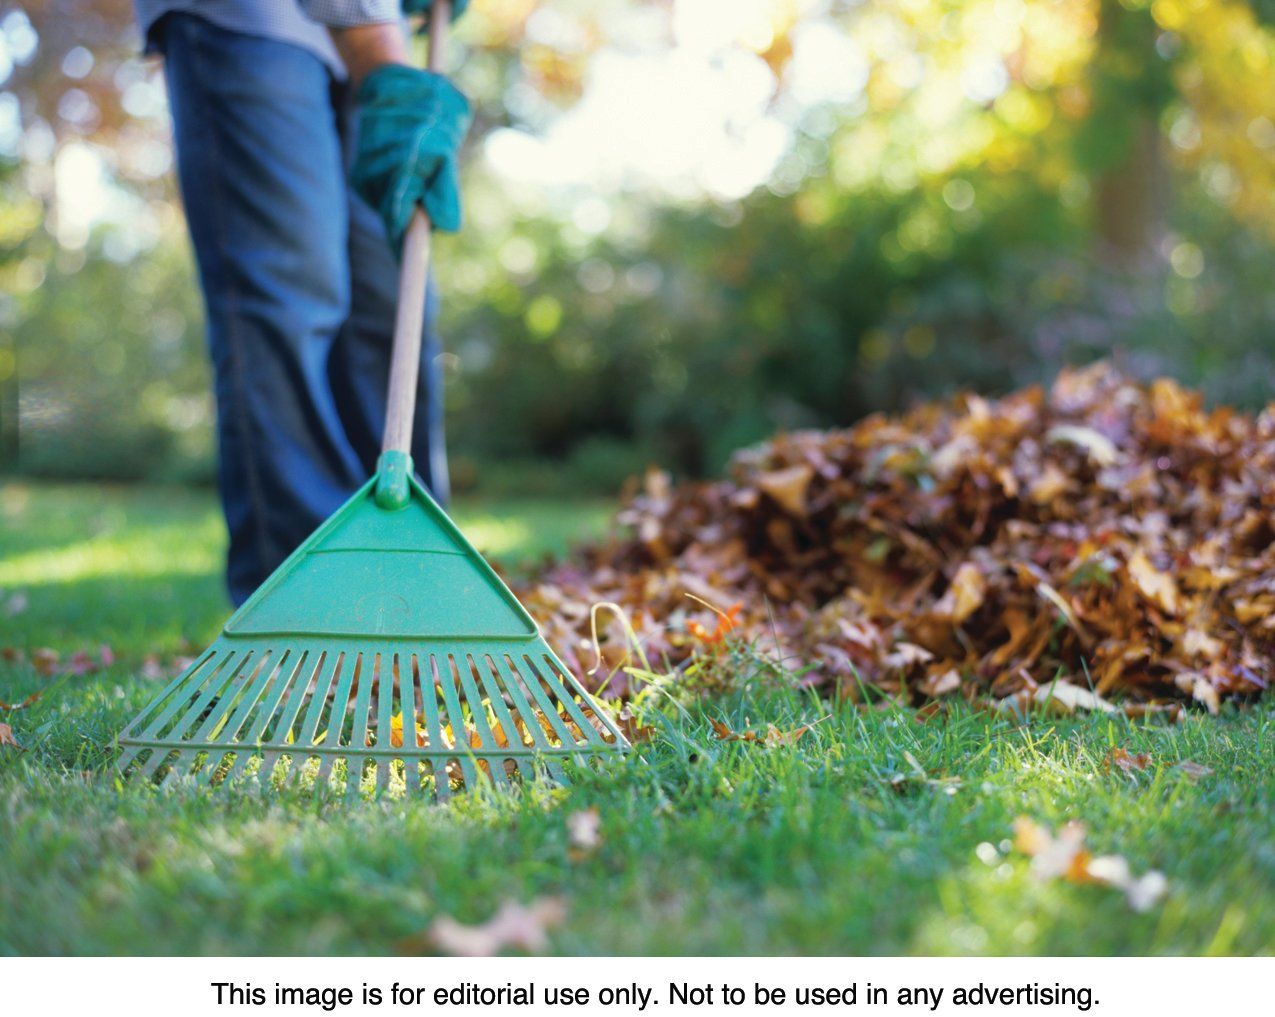 Waste agency offers guide to disposing of fall clean-up by